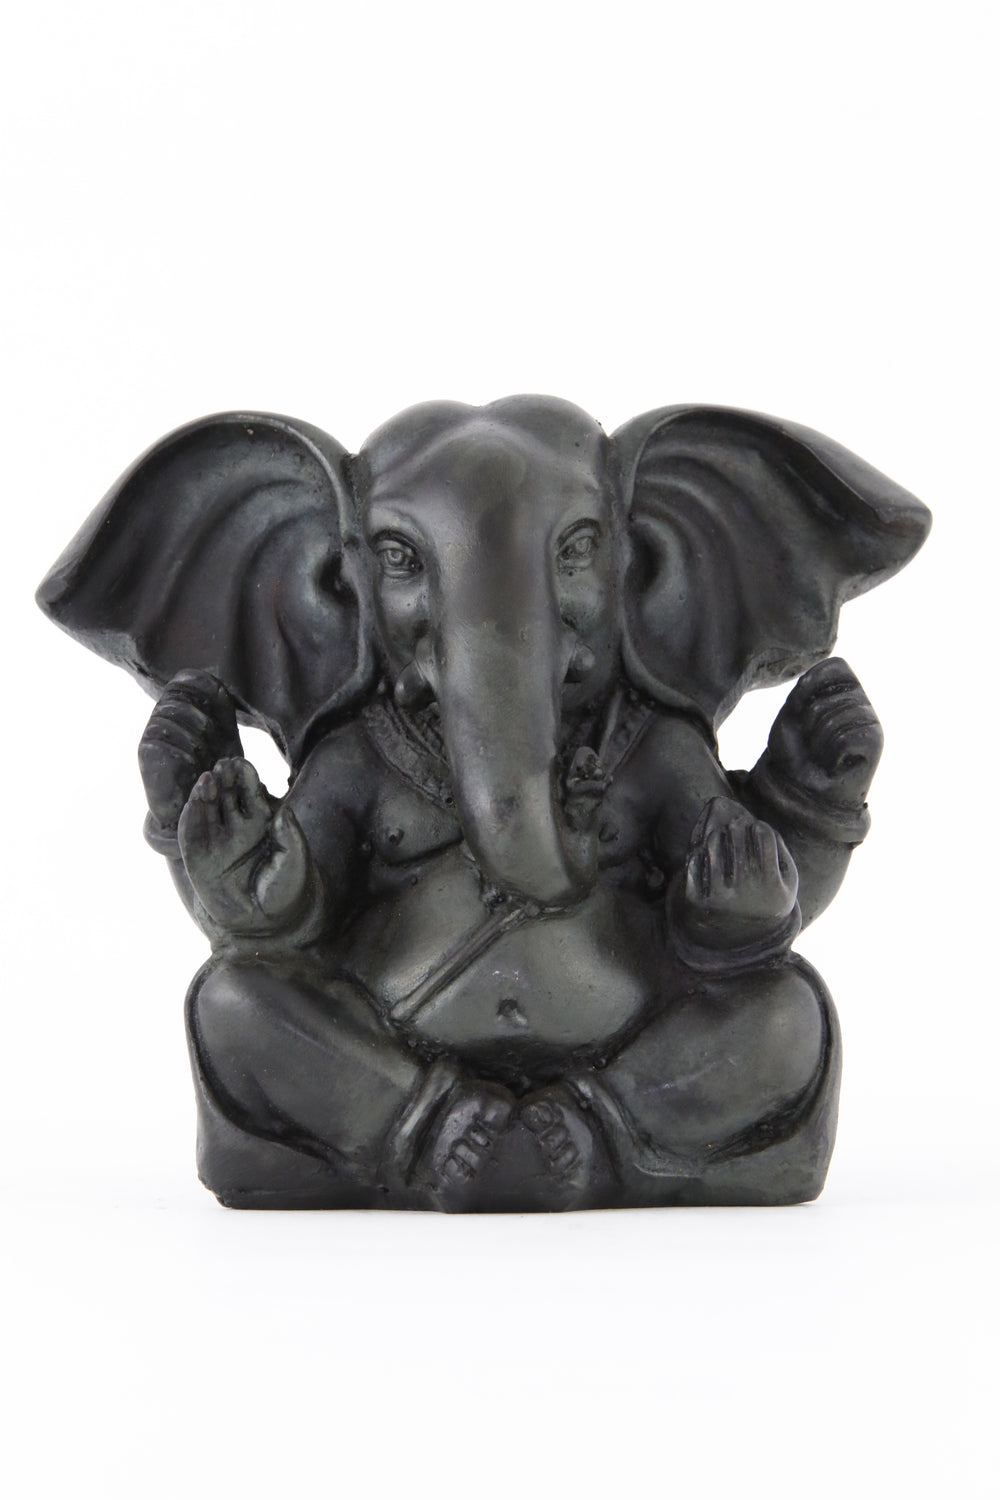 GANESHA BALD POINTY EARS STATUE DARK LARGE FRONT VIEW